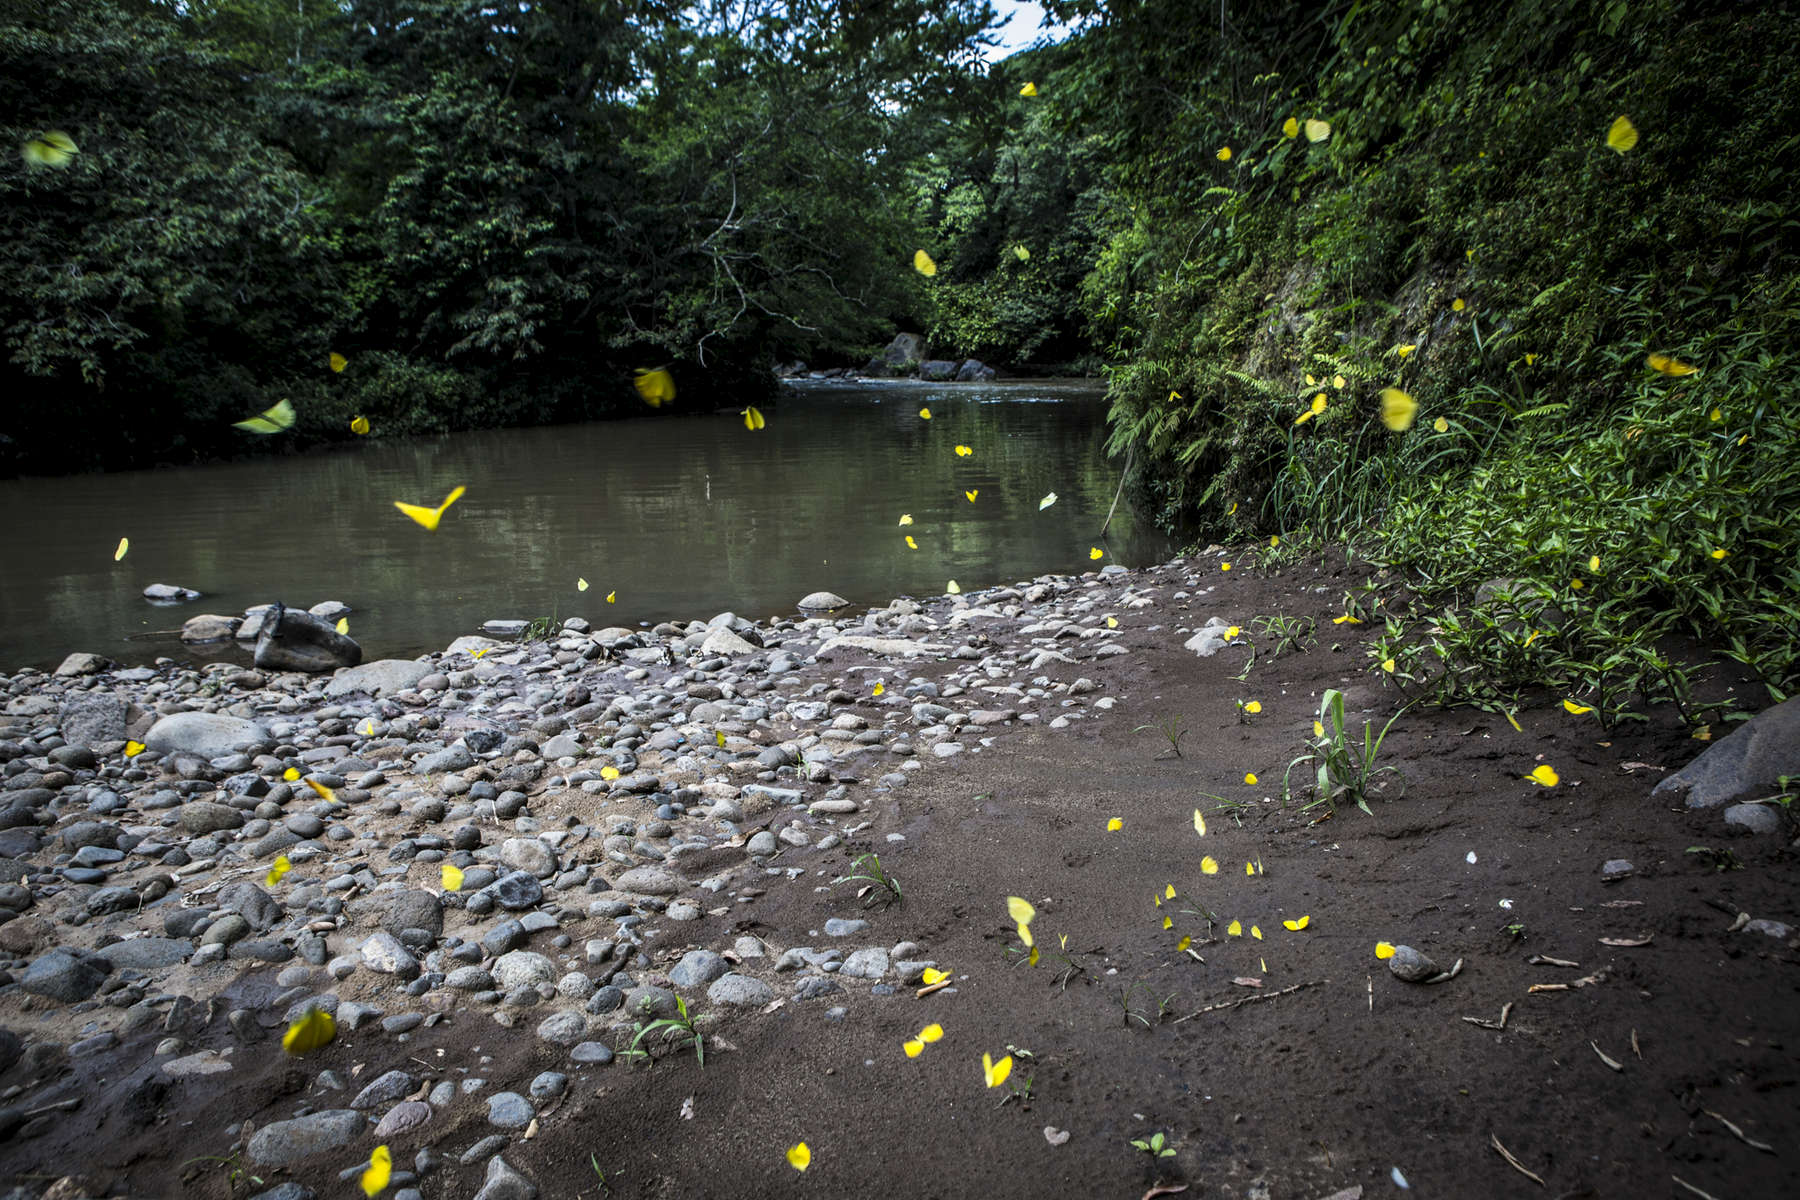 San Lorenzo, El Salvador- Butterflies fly by the Rio Pampe, one of the most heavily effected areas during the Ingenio La Magdalena molasses spill in San Lorenzo, El Salvador June 2018. In May 2016, nine thousand gallons of molasses spilled into the San Lorenzo and adjoining rivers killing life in and around the river for 80km and contaminating the water supply for thousands of people. After two lawsuits and millions of dollars in fines, Ingenio La Magdalena has effectively cleaned up the disaster but the damage has taken its toll on the wildlife, esp fish, that the local communities depend so heavily on. Many residents affected by the spill have yet to be compensated for damages to their livelihoods. (Jane Hahn)